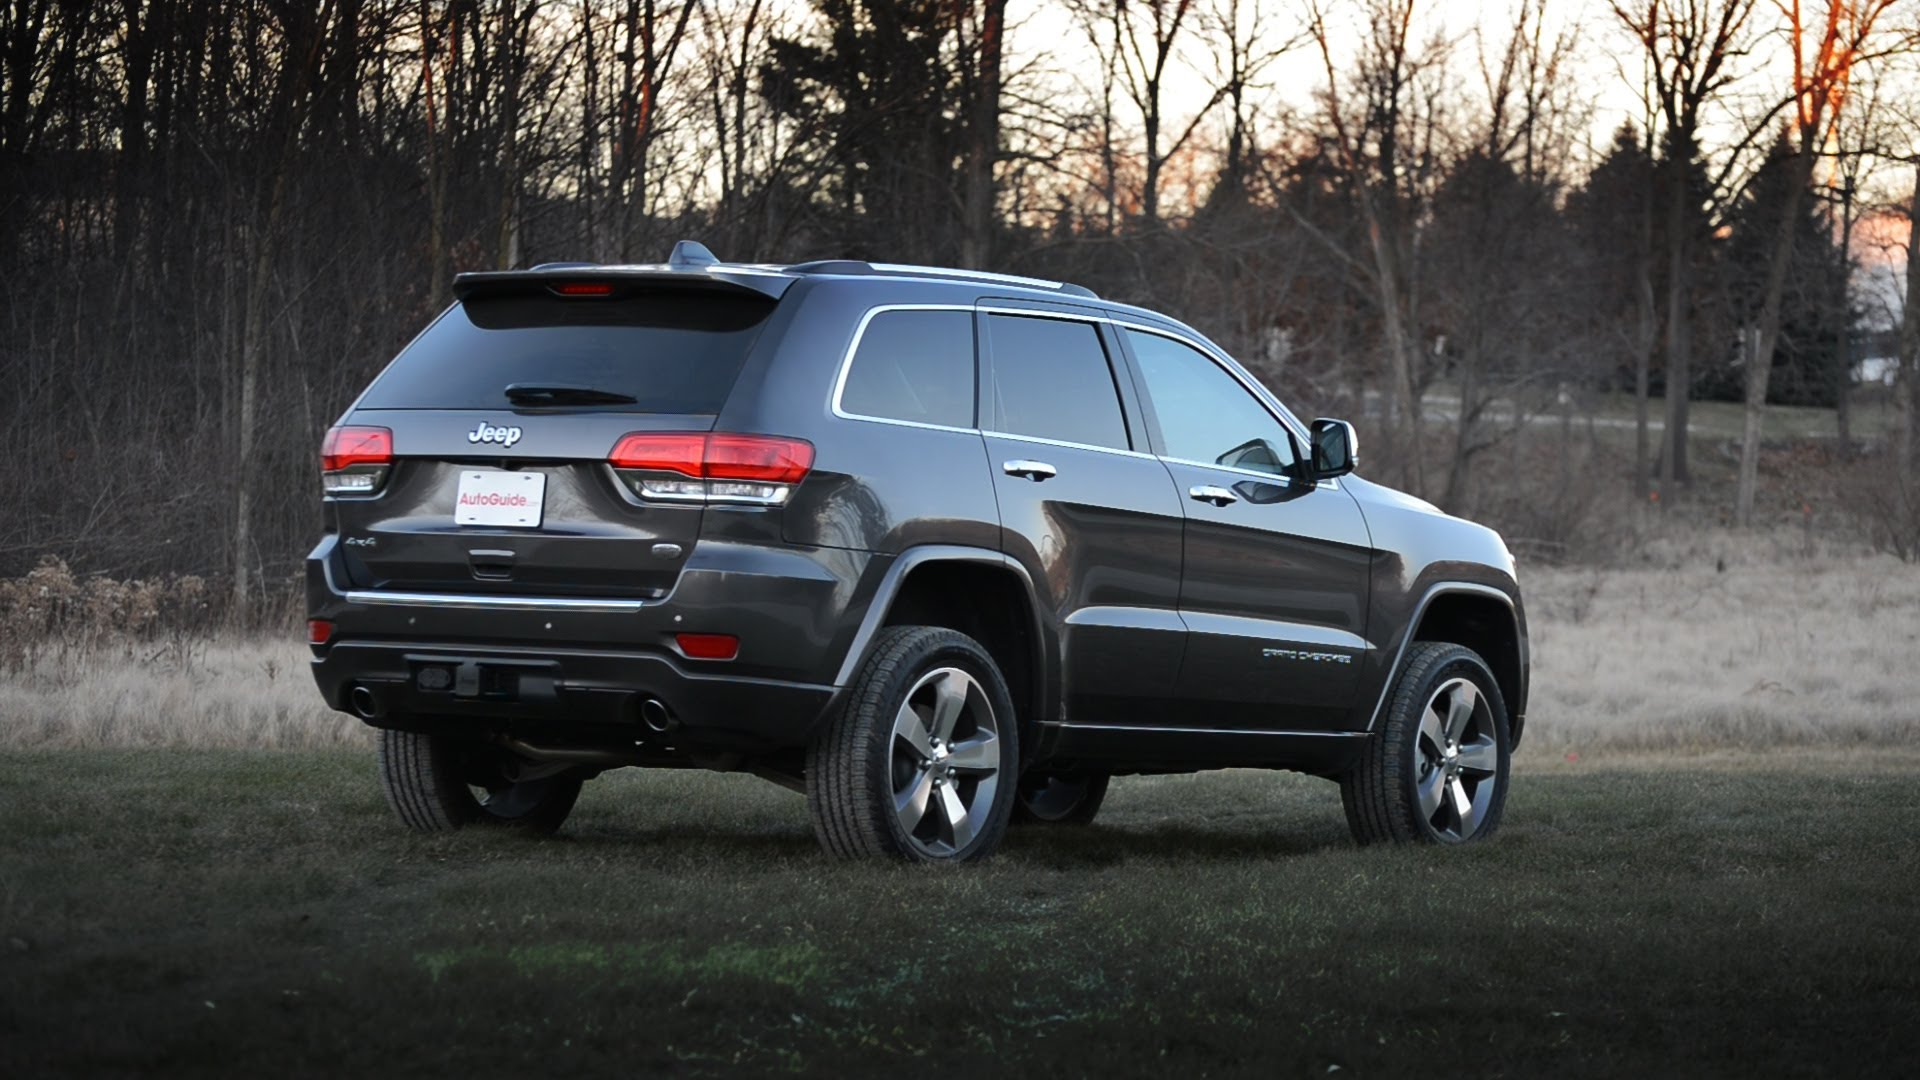 2015 jeep grand cherokee wl pictures information and specs auto. Black Bedroom Furniture Sets. Home Design Ideas